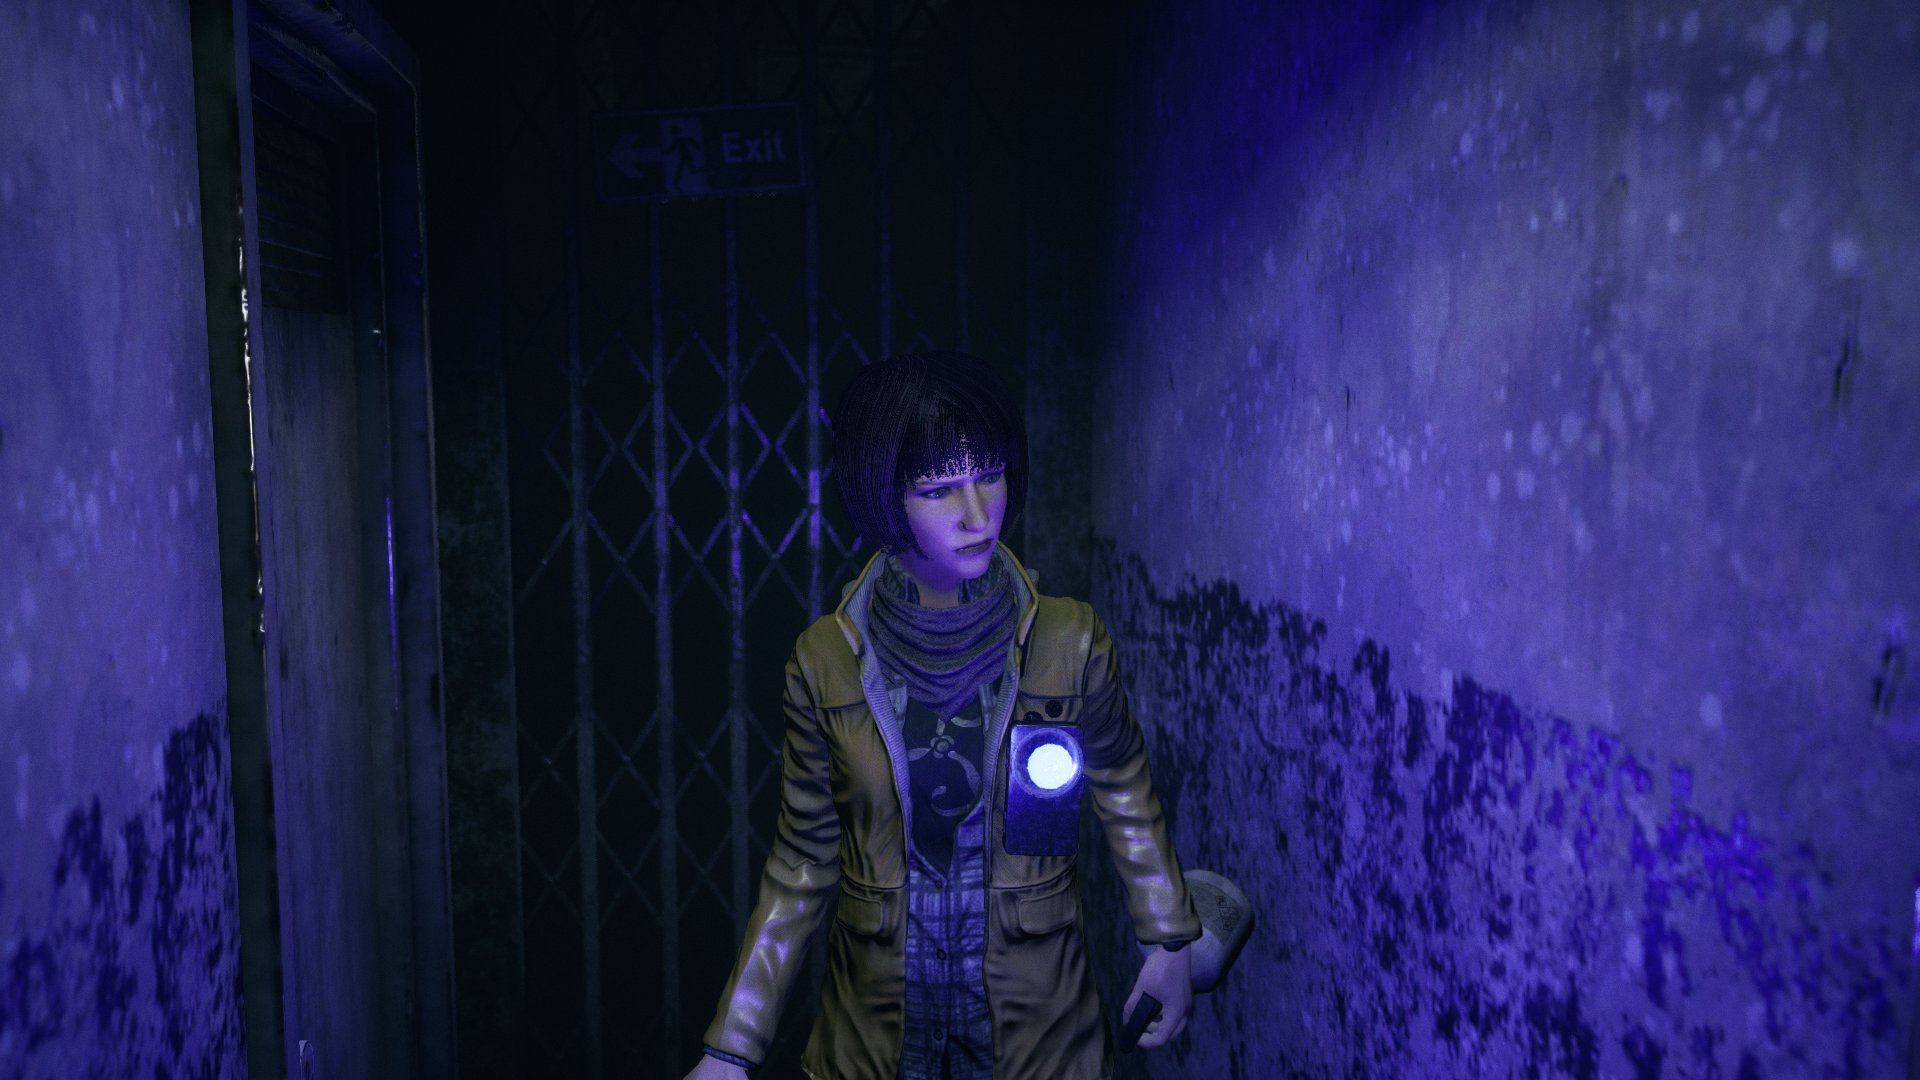 A screenshot from Song of Horror, a woman exploring a blue-lit hallway, with strange patterns on the walls.